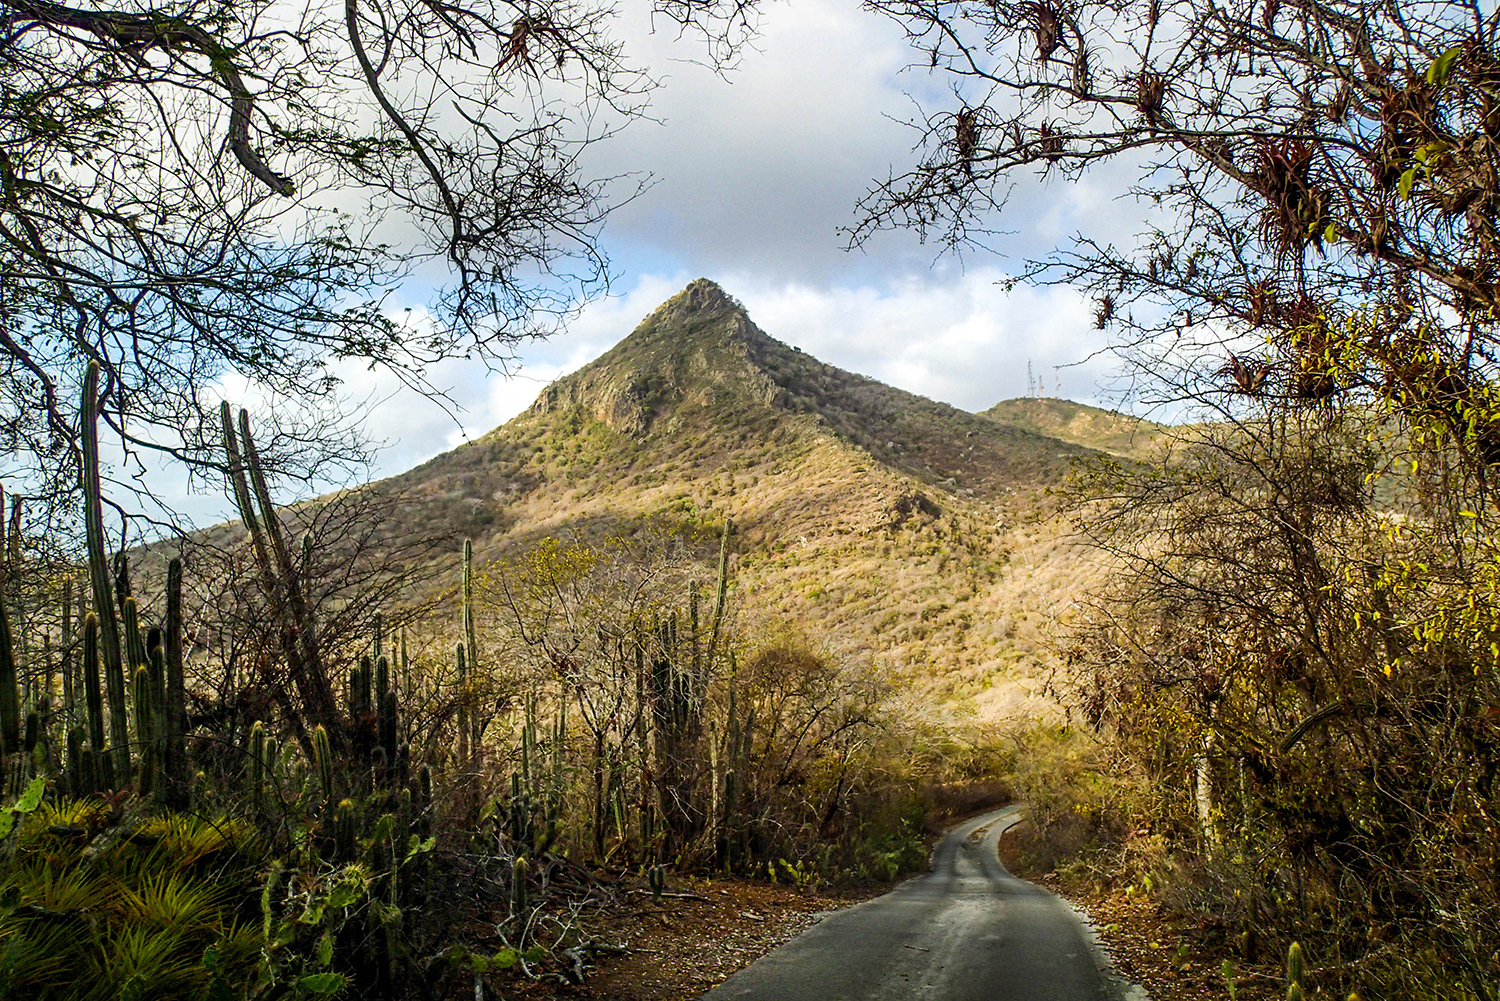 <p>A view en route to Christoffelberg, Curaçao's highest peak. While only 371 metres high, it is still something of a strenuous climb in the Caribbean heat.</p>